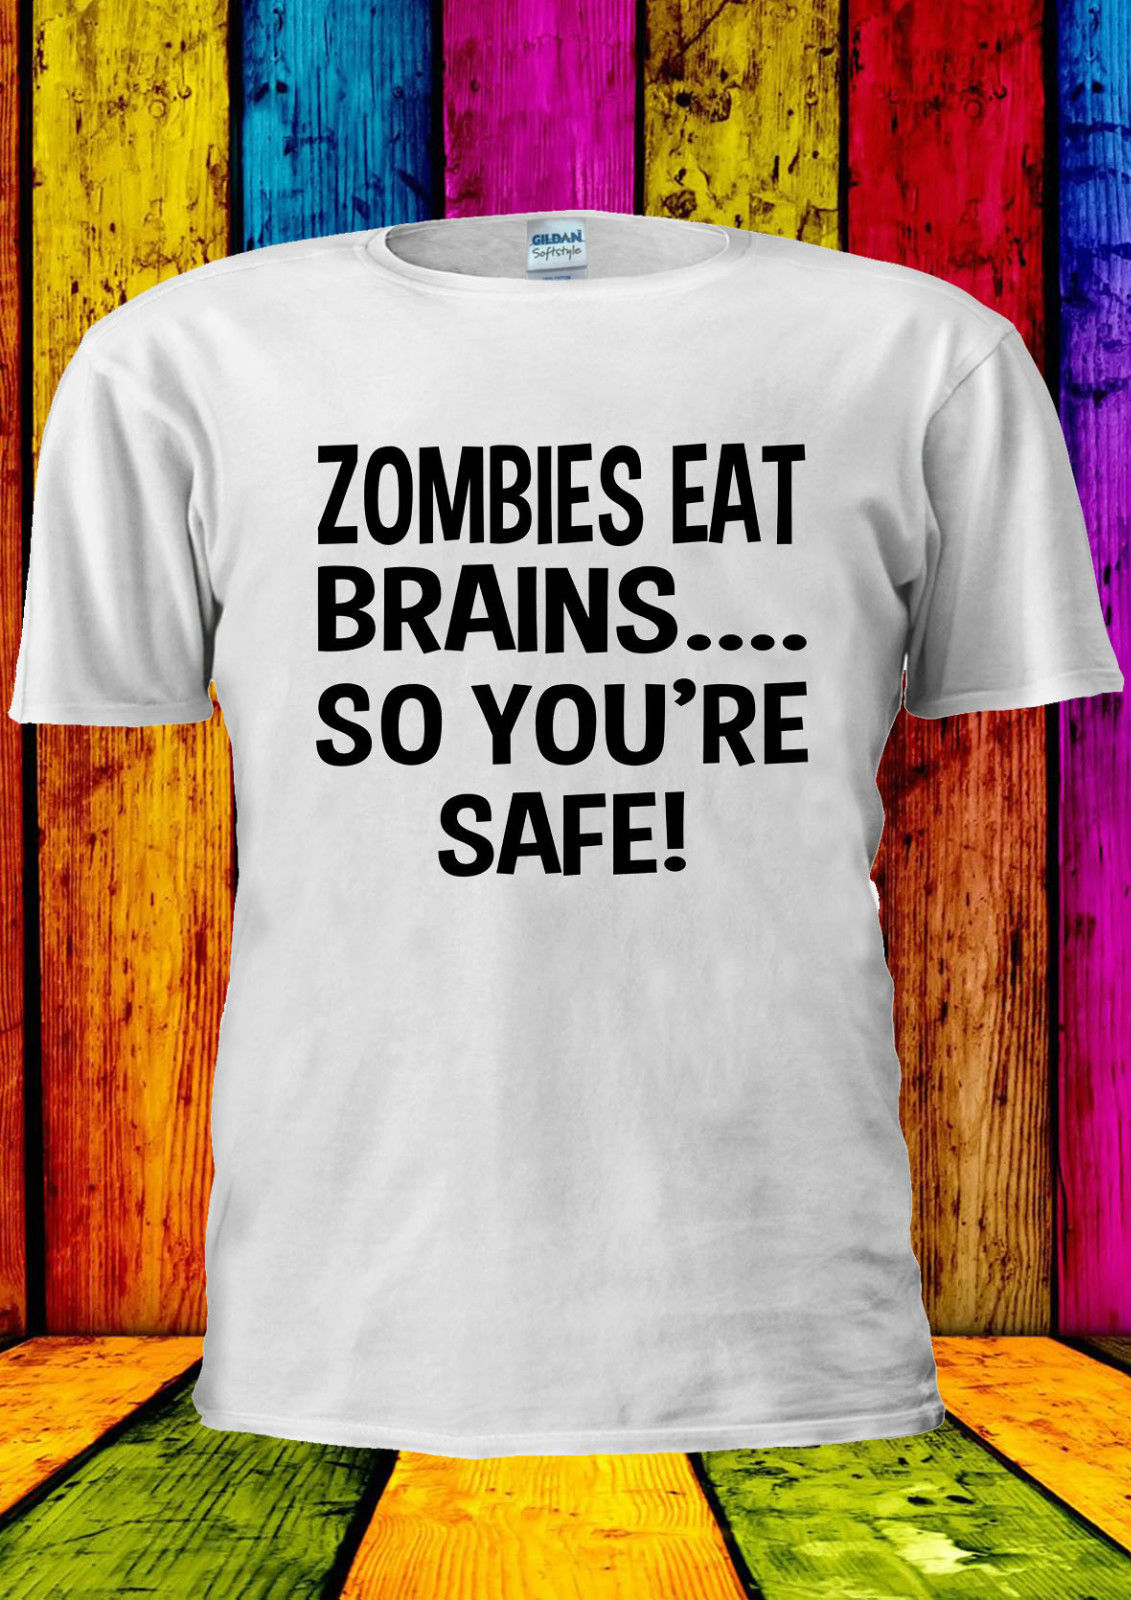 Zombies Eat Brains So You Are Safe T-shirt Vest Top Men Women Unisex 2290 New T Shirts Funny Tops Tee New Unisex Funny Tops